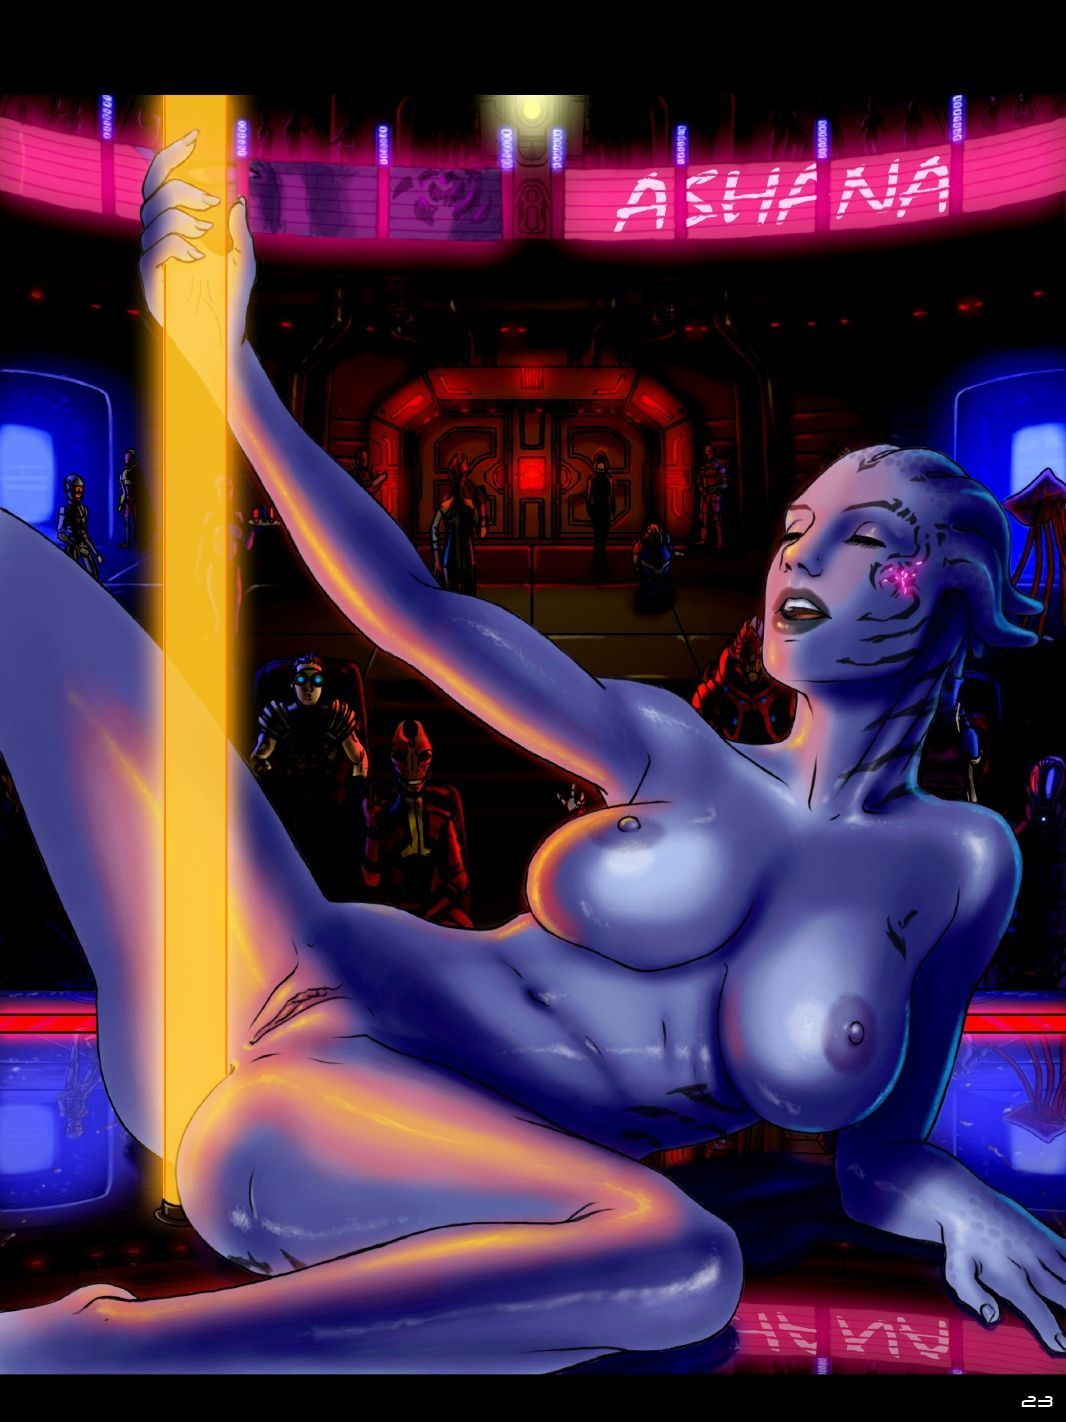 FORNAX_The_galaxys_finest_xenophilia_(Mass_Effect) comix_57971.jpg